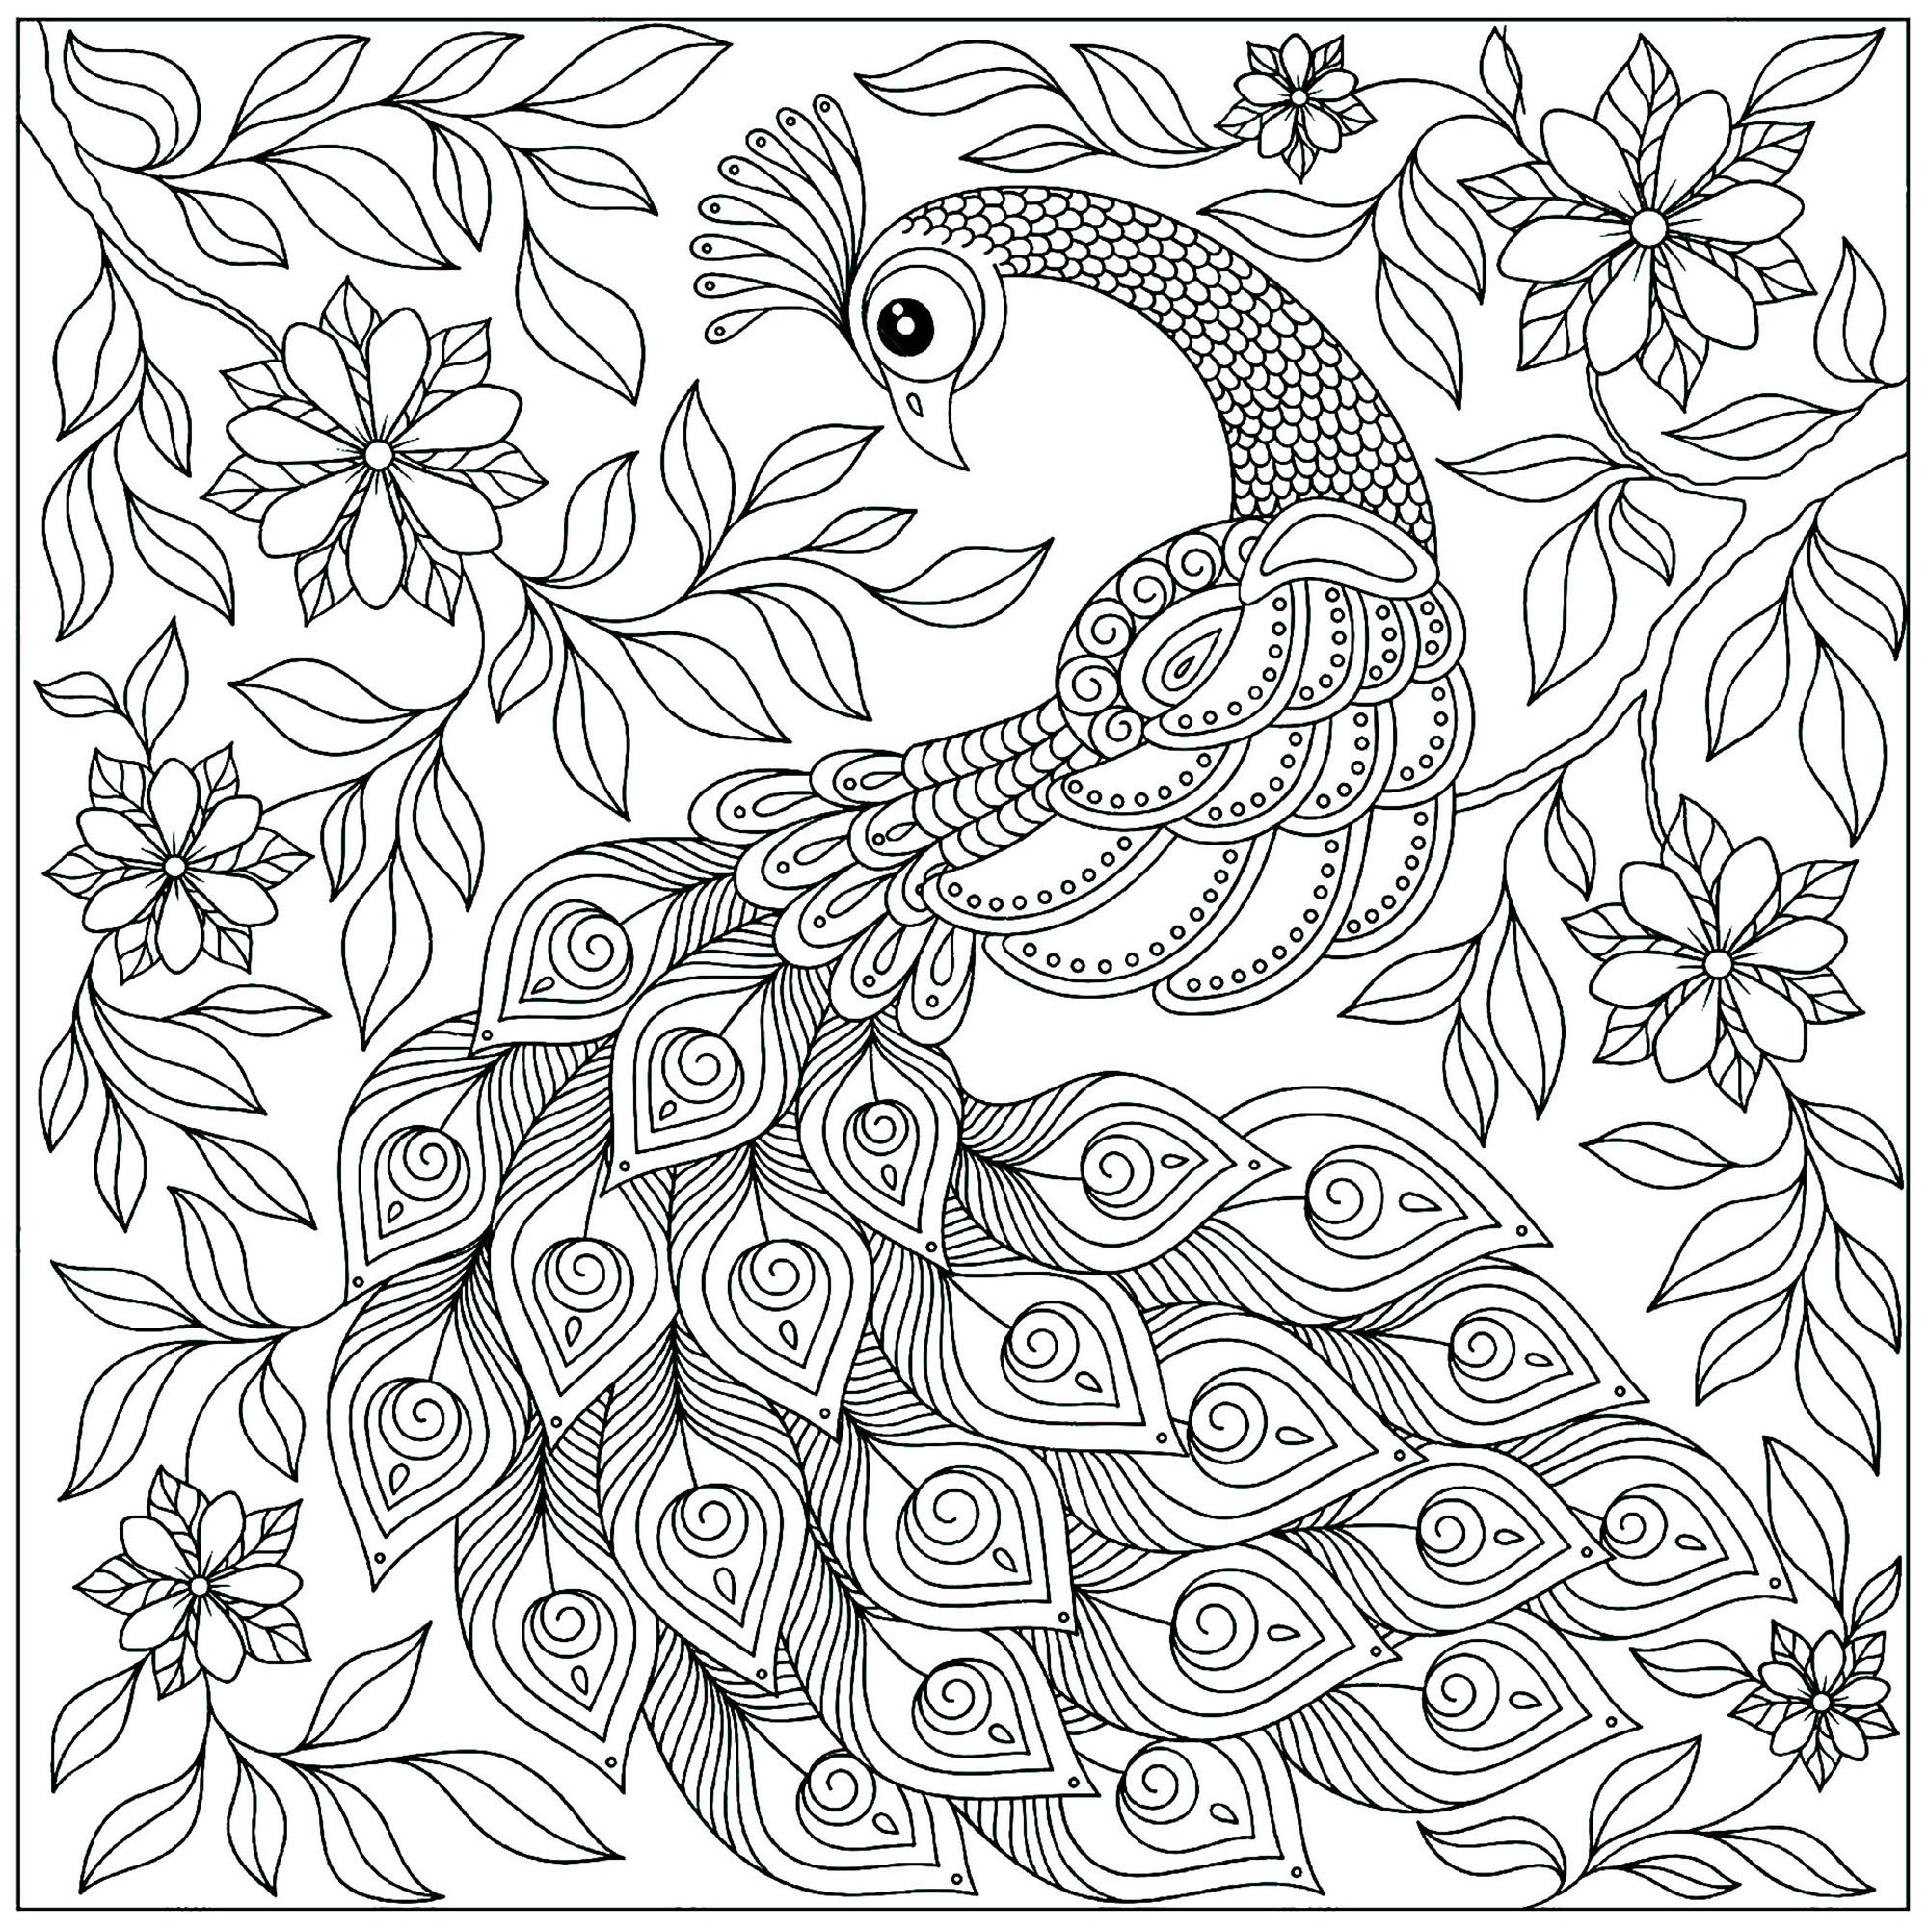 Peacocks to print - Peacocks Kids Coloring Pages